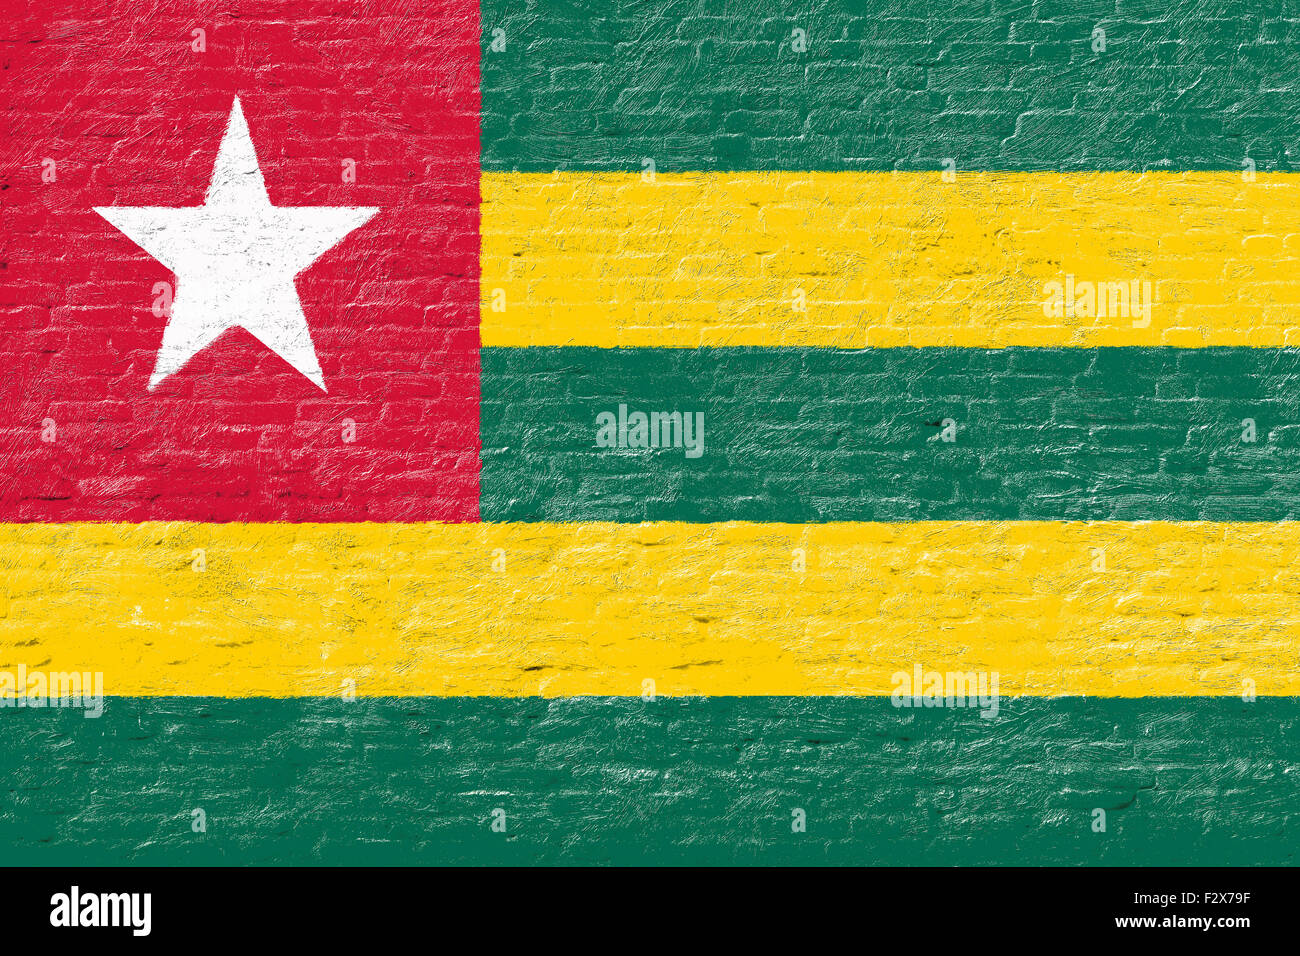 Togo - National flag on Brick wall - Stock Image